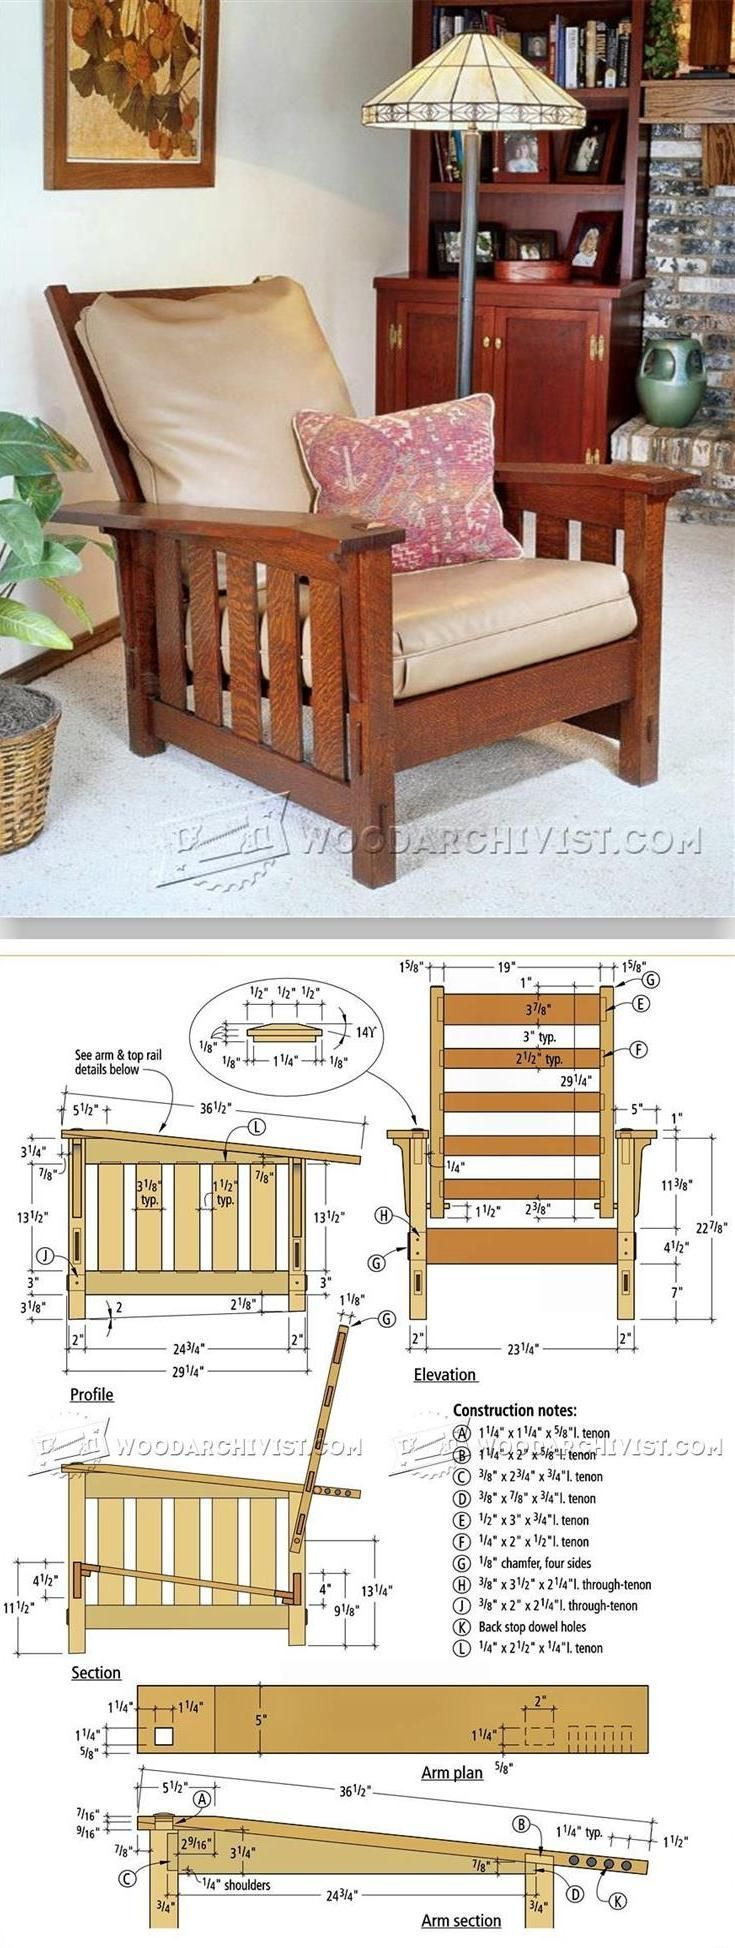 Morris Chair Plans Furniture Plans and